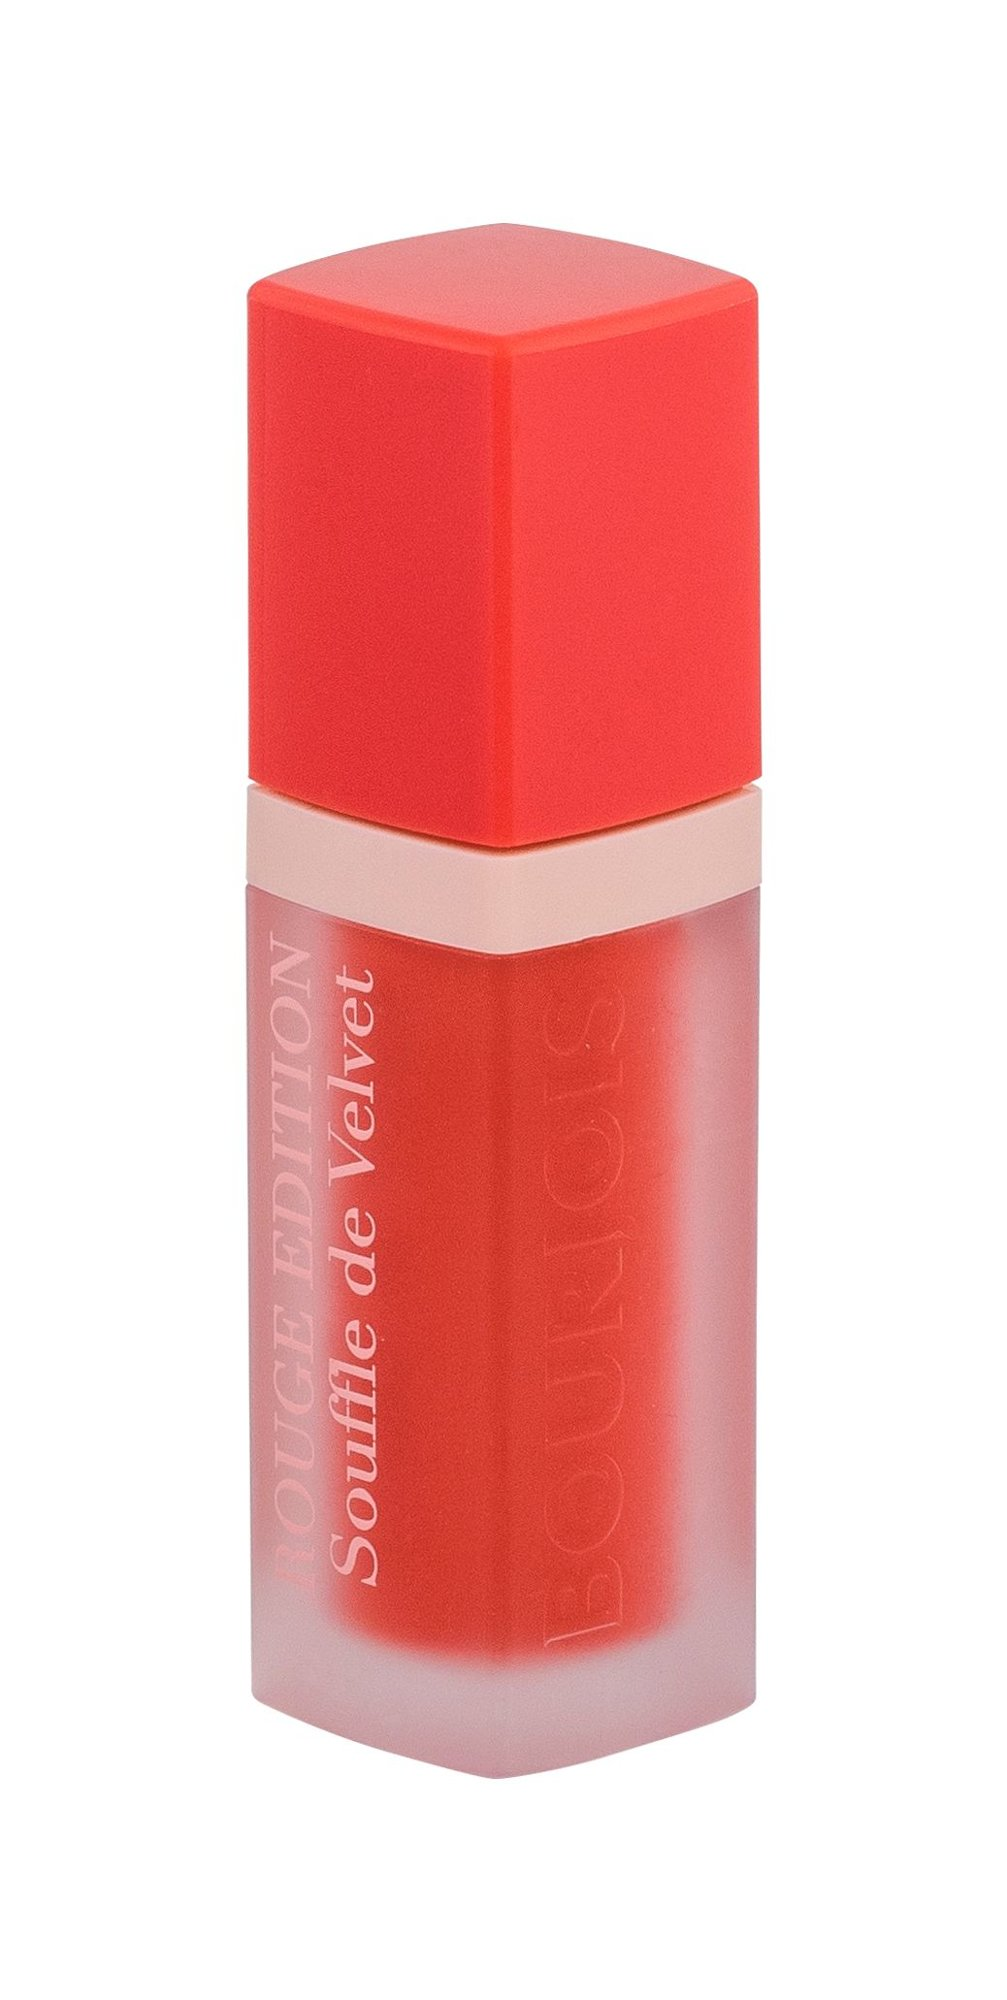 BOURJOIS Paris Rouge Edition Cosmetic 7,7ml 01 Orangélique